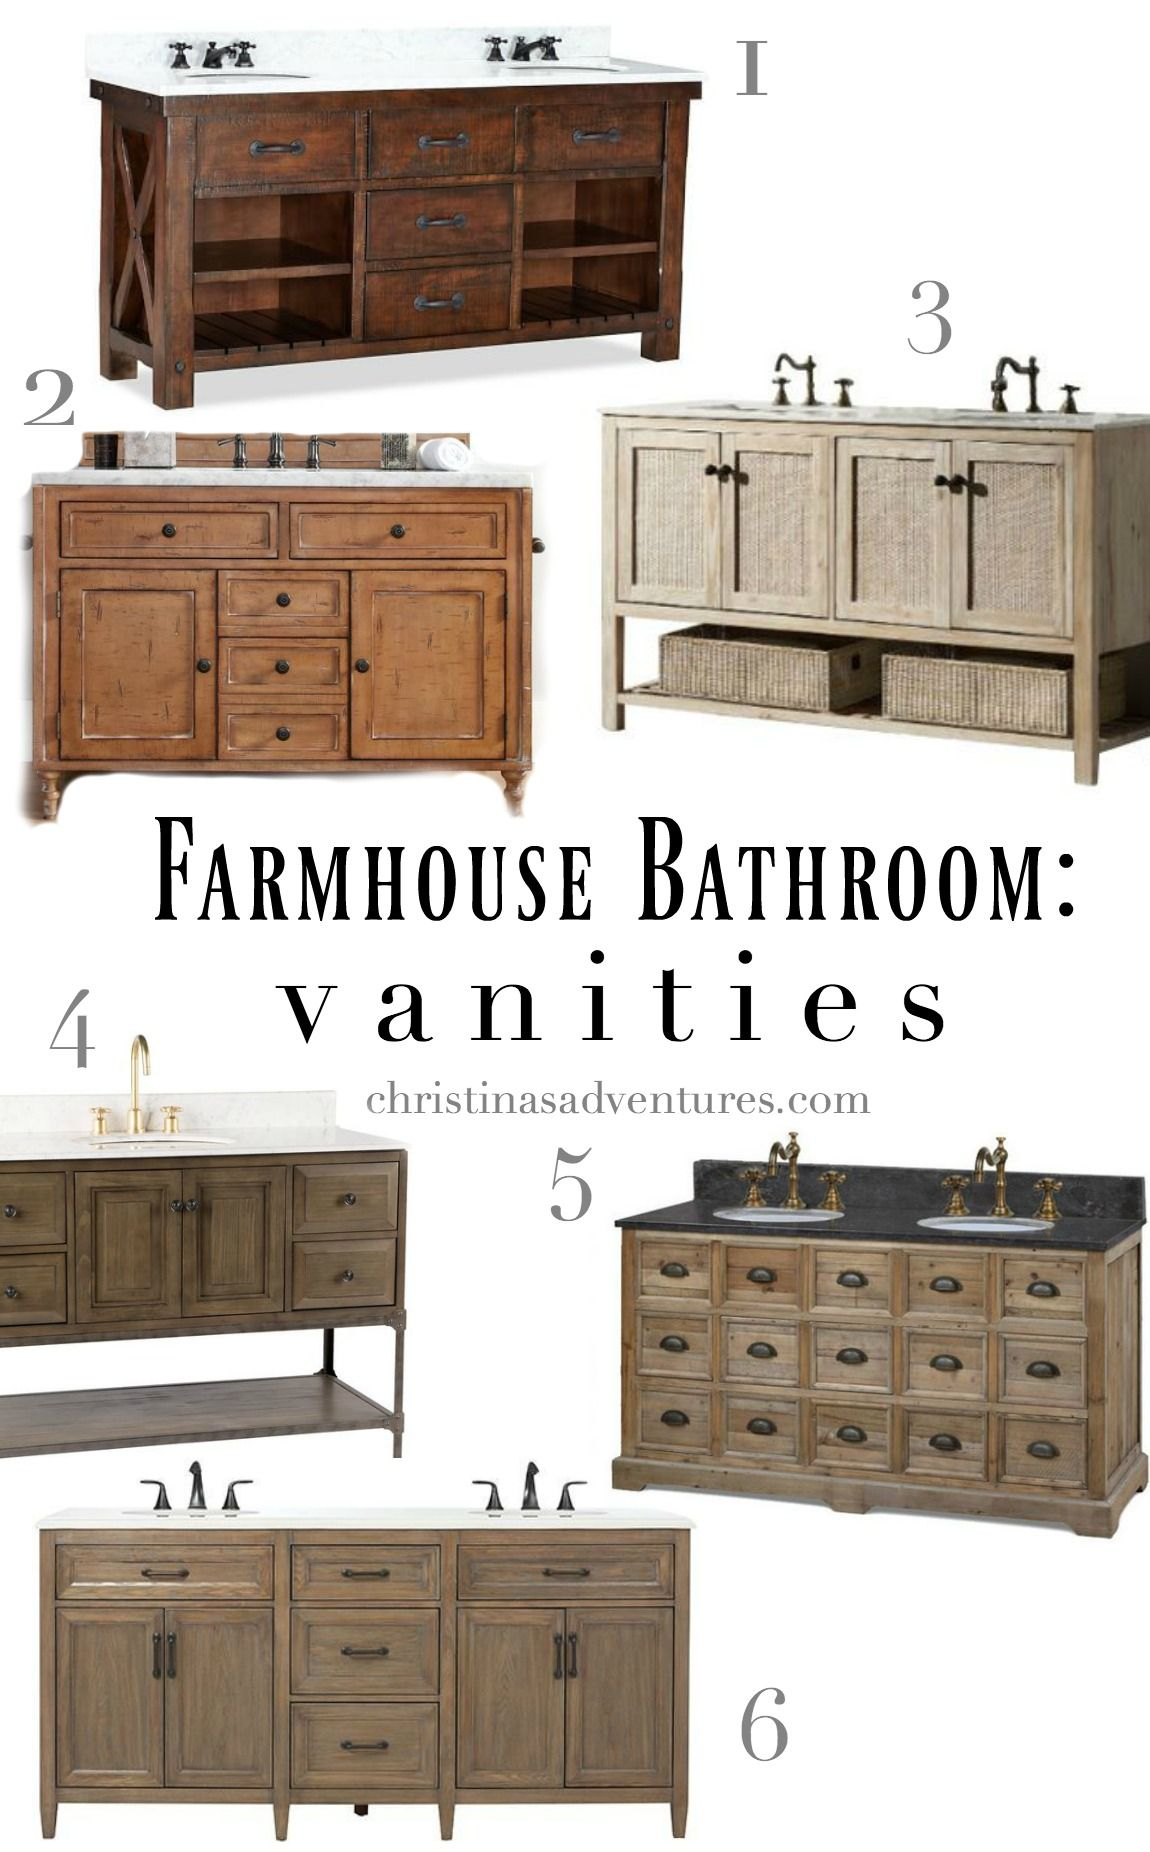 Farmhouse Bathroom Design Elements And Sources Rustic Bathroom